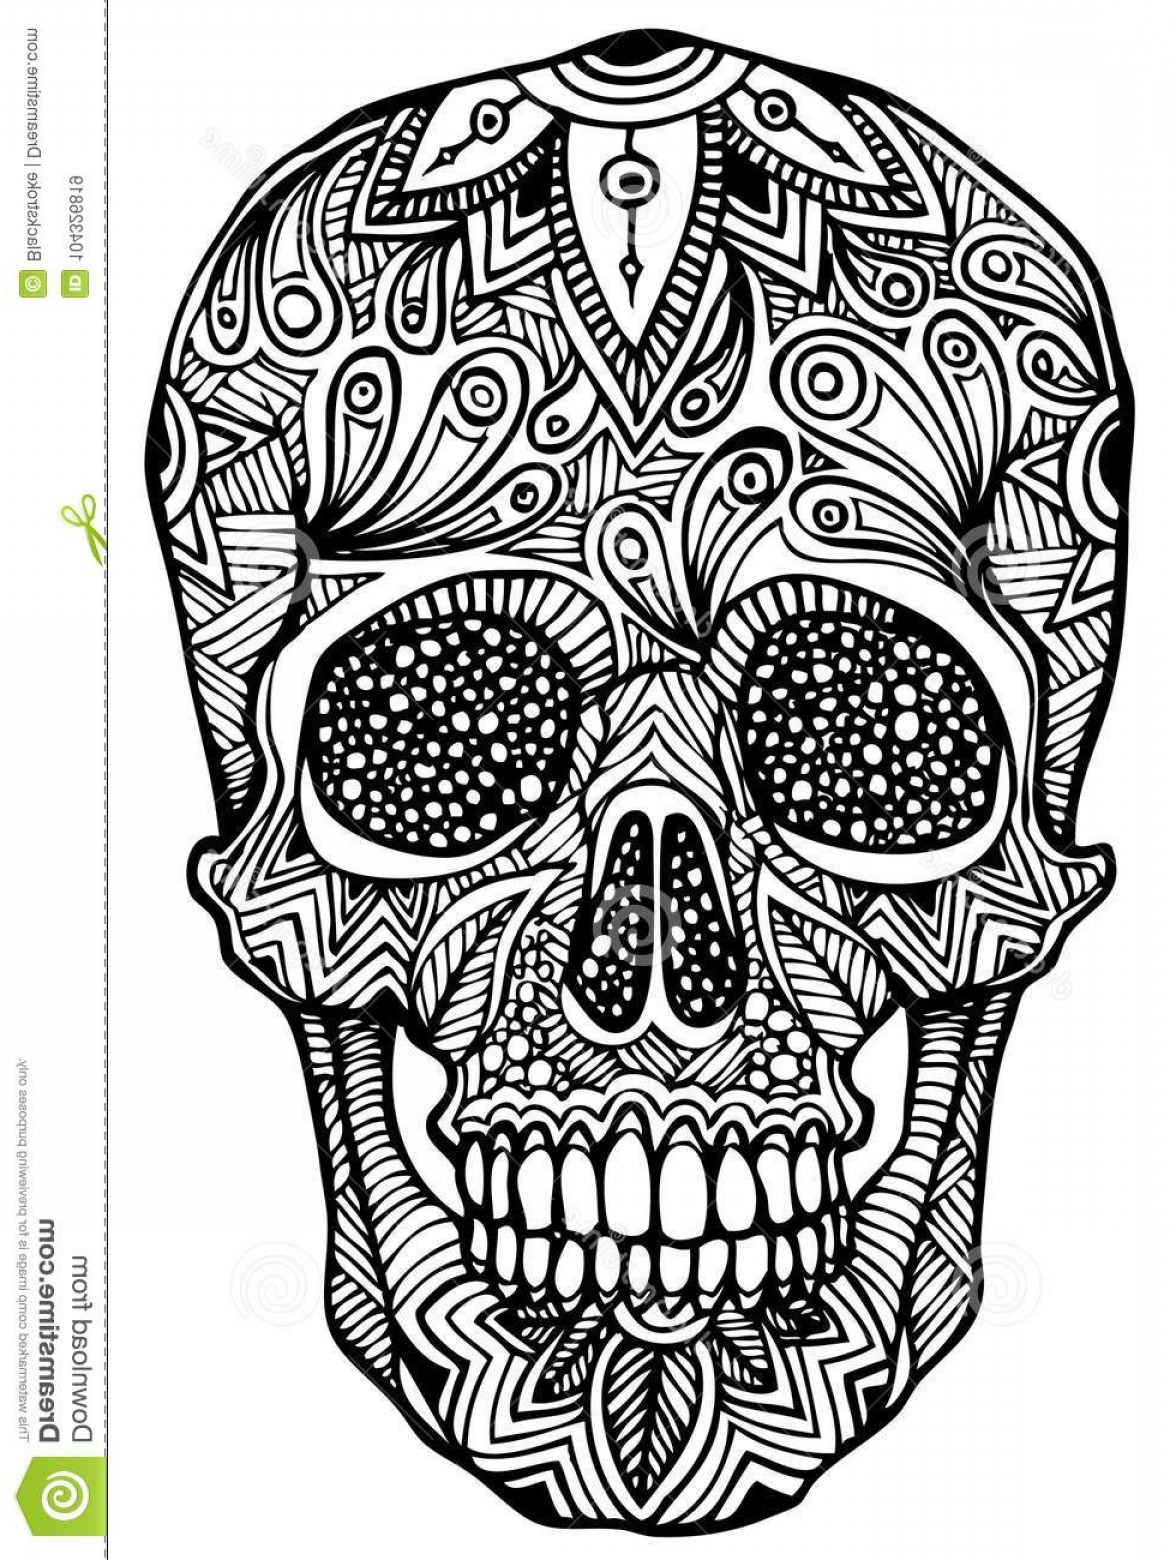 His And Hers Skulls Vector: Zentangle Vector File Authentic Patterns File Zentangle Skull Vector Image